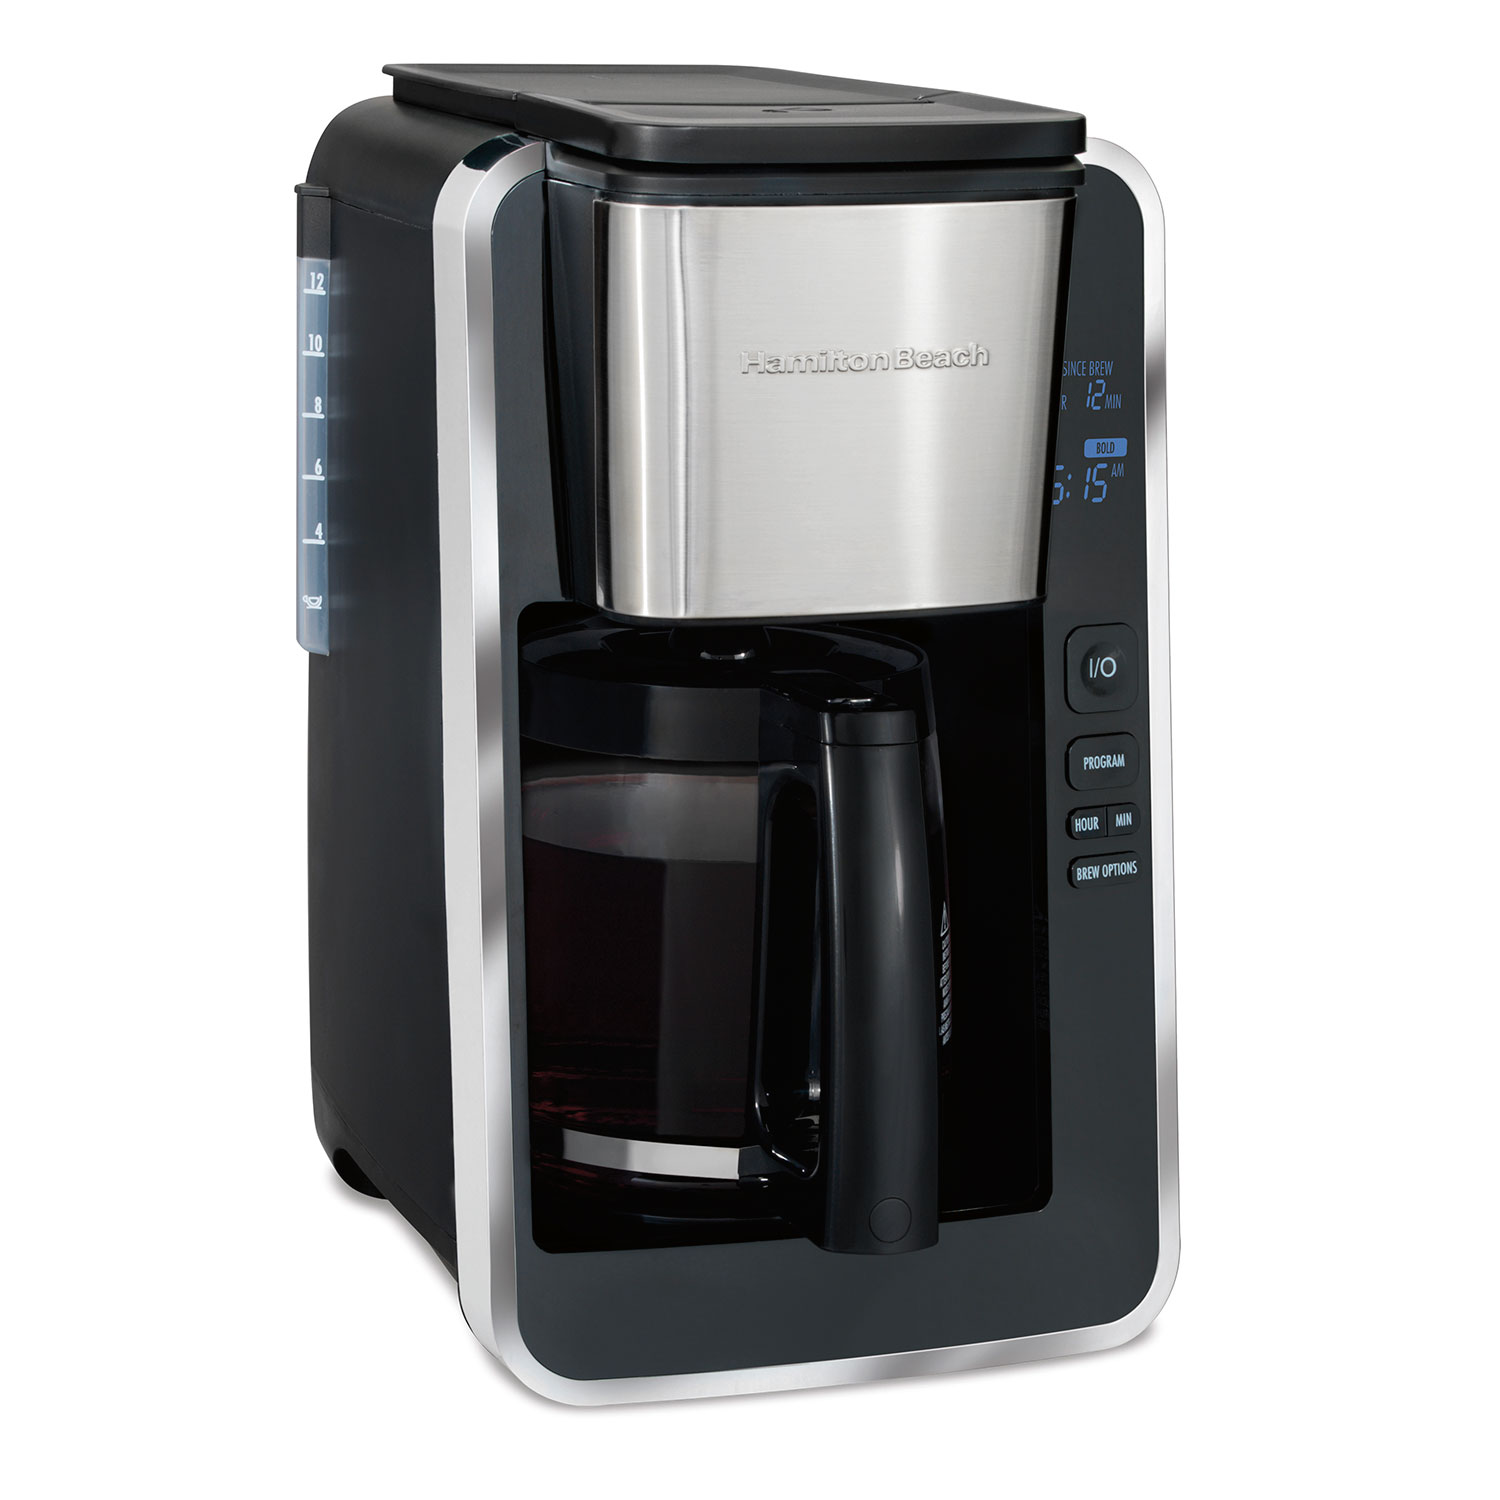 Programmable Easy Access Deluxe Coffee Maker (46320)